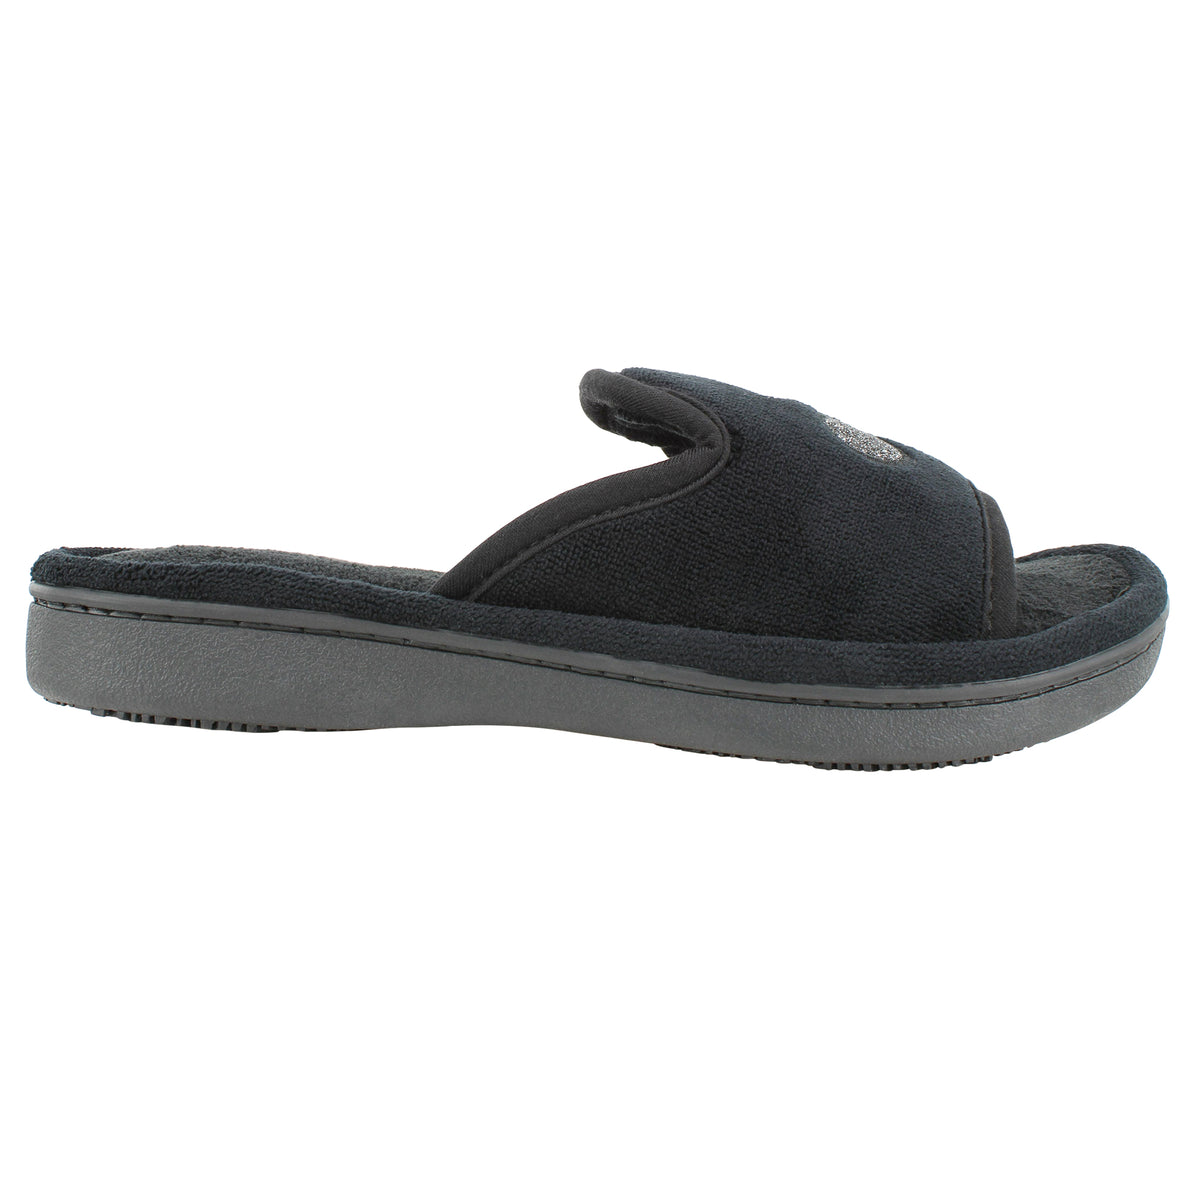 Isotoner MICRO-TERRY Open-Toe Slide with Memory Foam